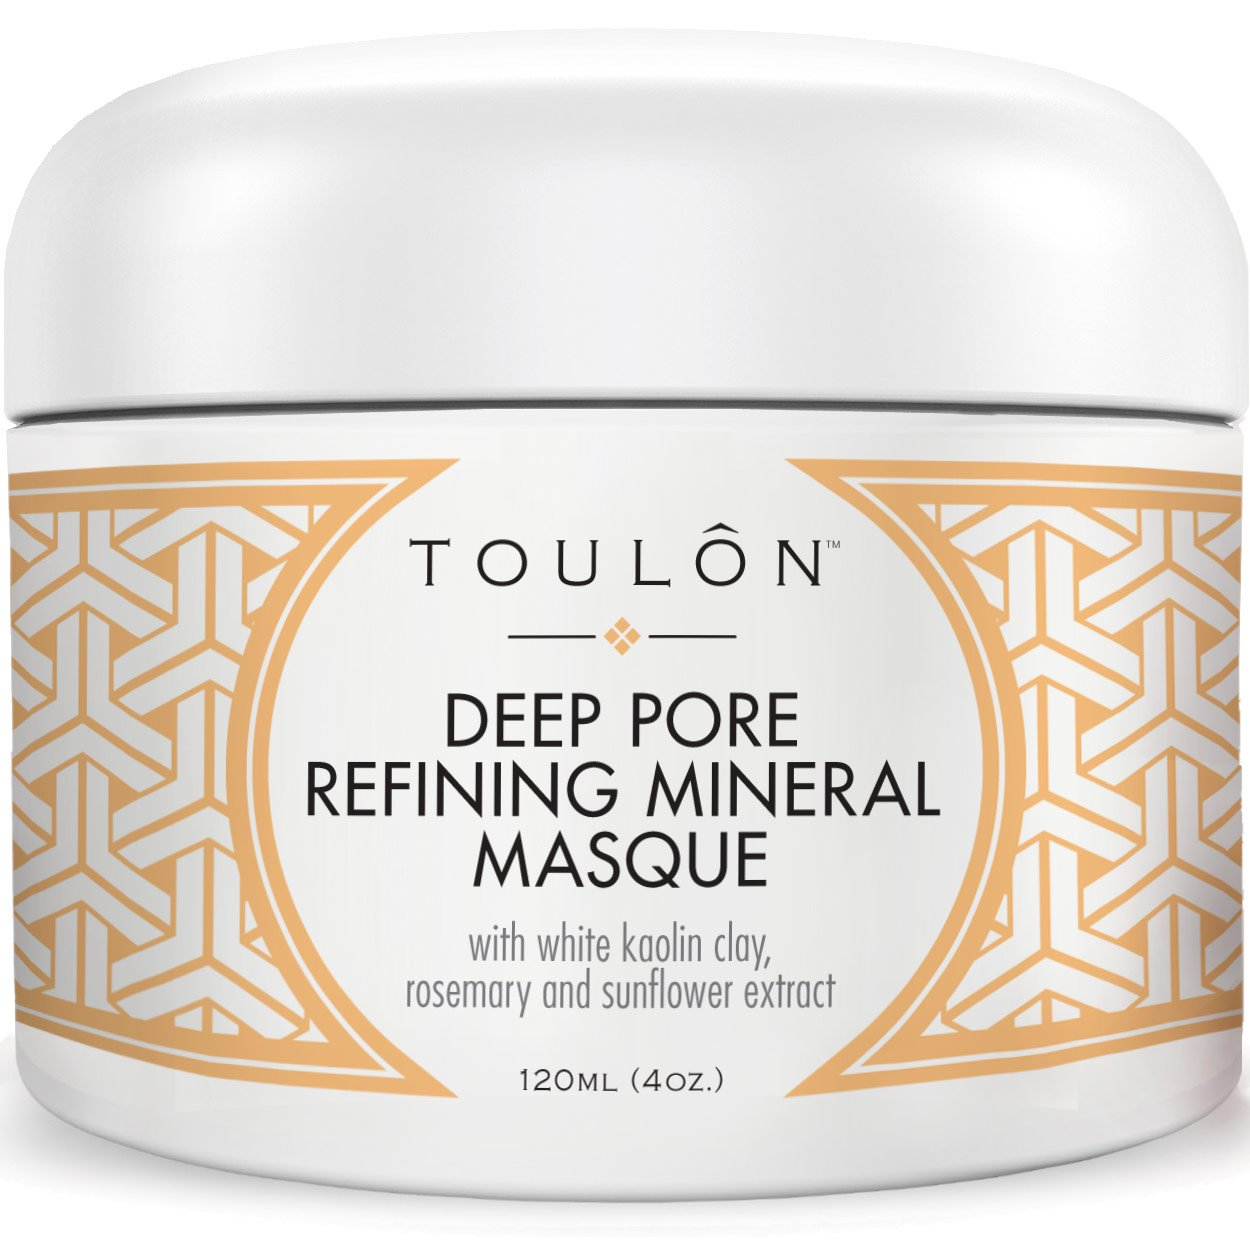 Kaolin Clay Mask for Face with White Kaolin Mineral Clay. Soft Pure Healing Mask with Minerals to Reduce Wrinkles, Rid Blackheads & Acne & Detox Skin - Improve Complexion for Women or Men by TOULON